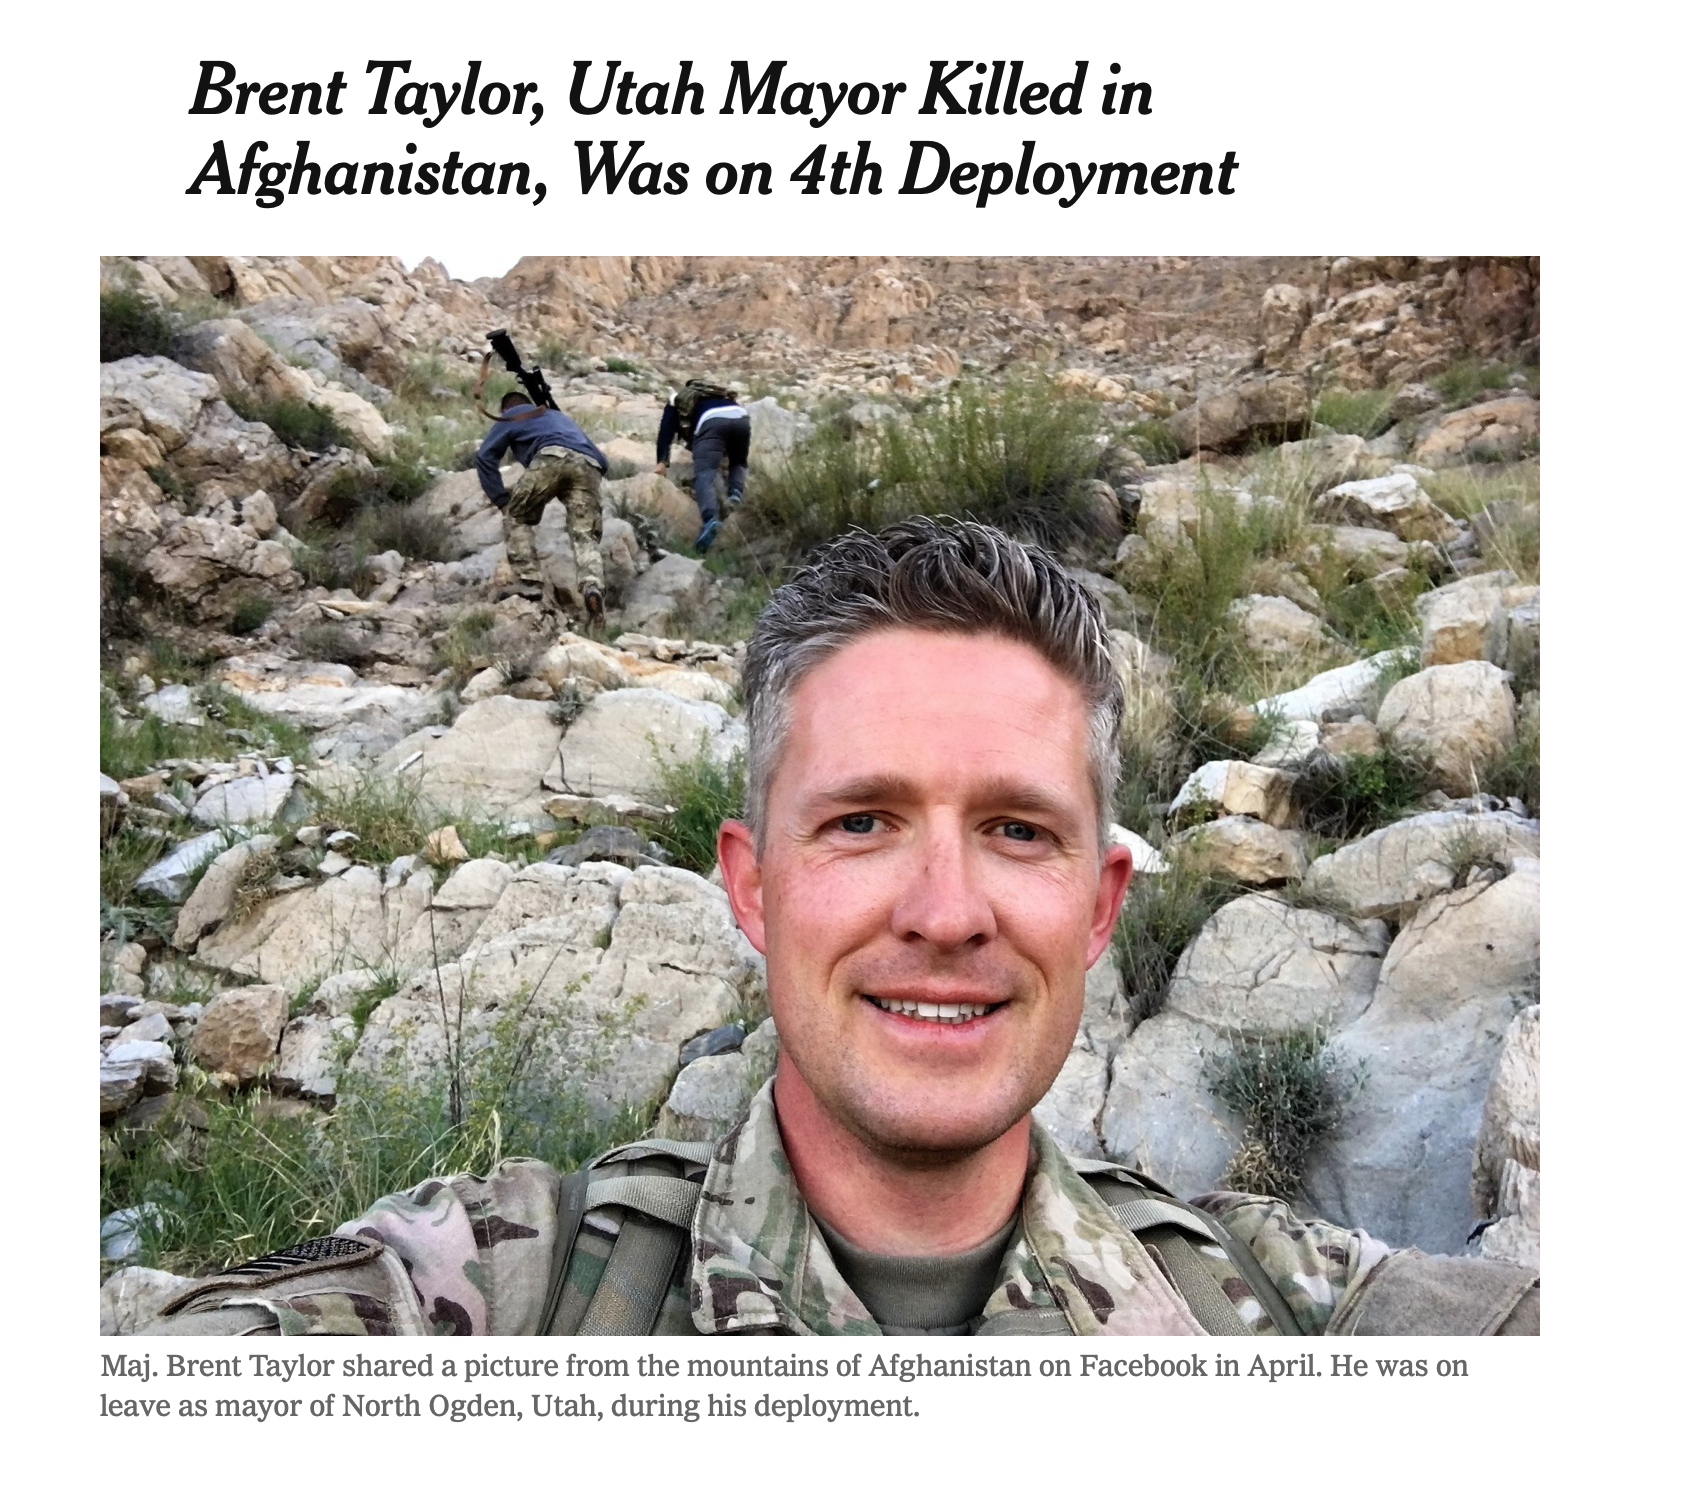 Image by the New York Times